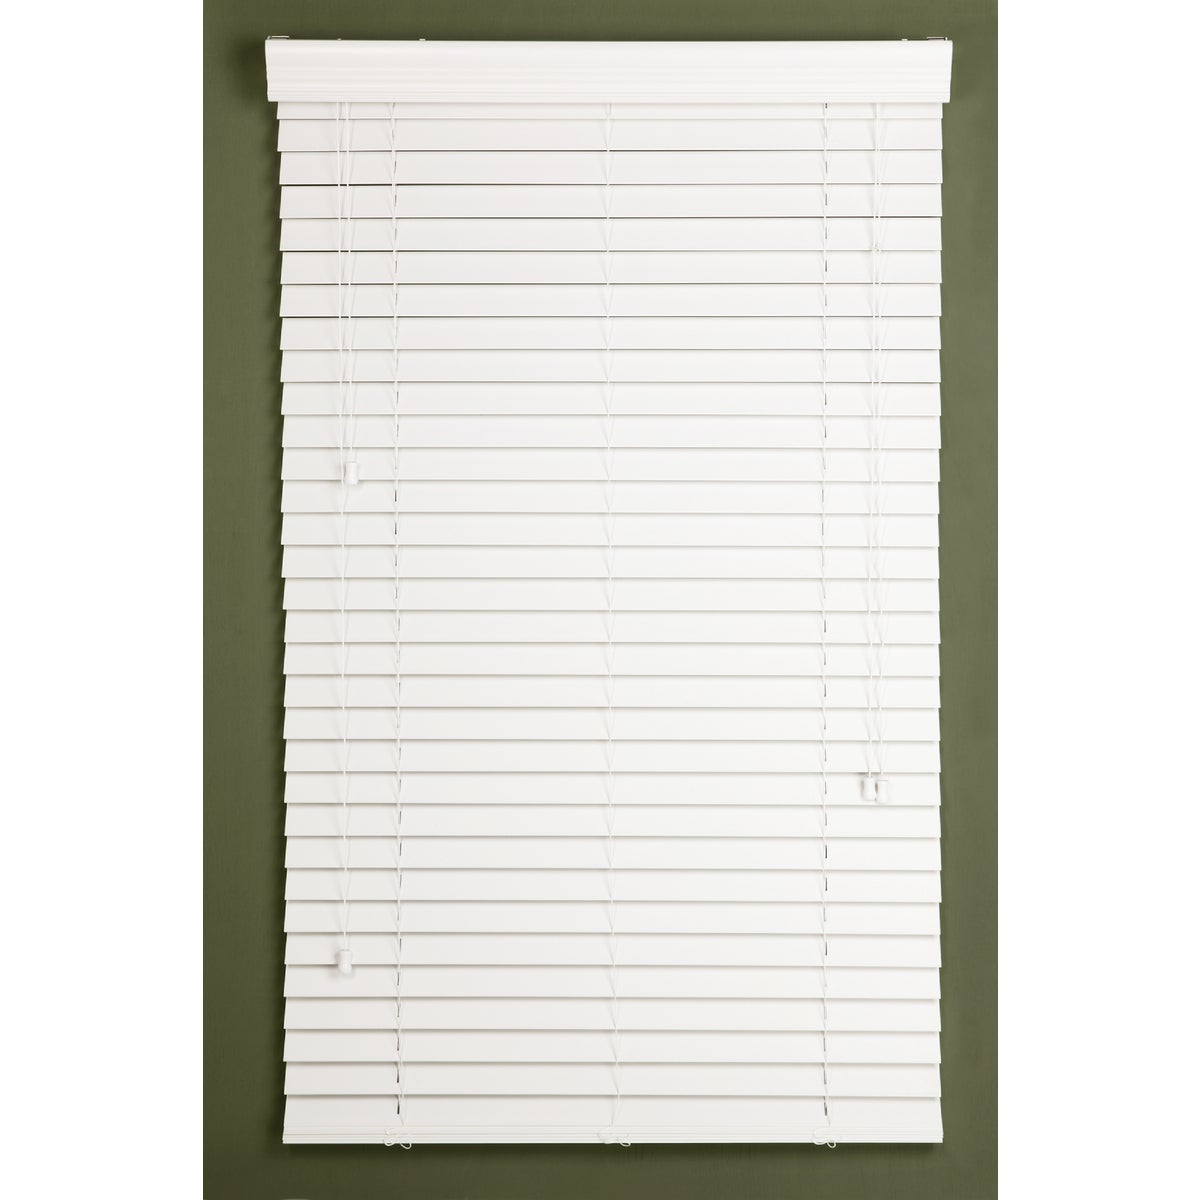 27X72 WHITE FAUX BLIND - 631965 by Lotus Wind Incom